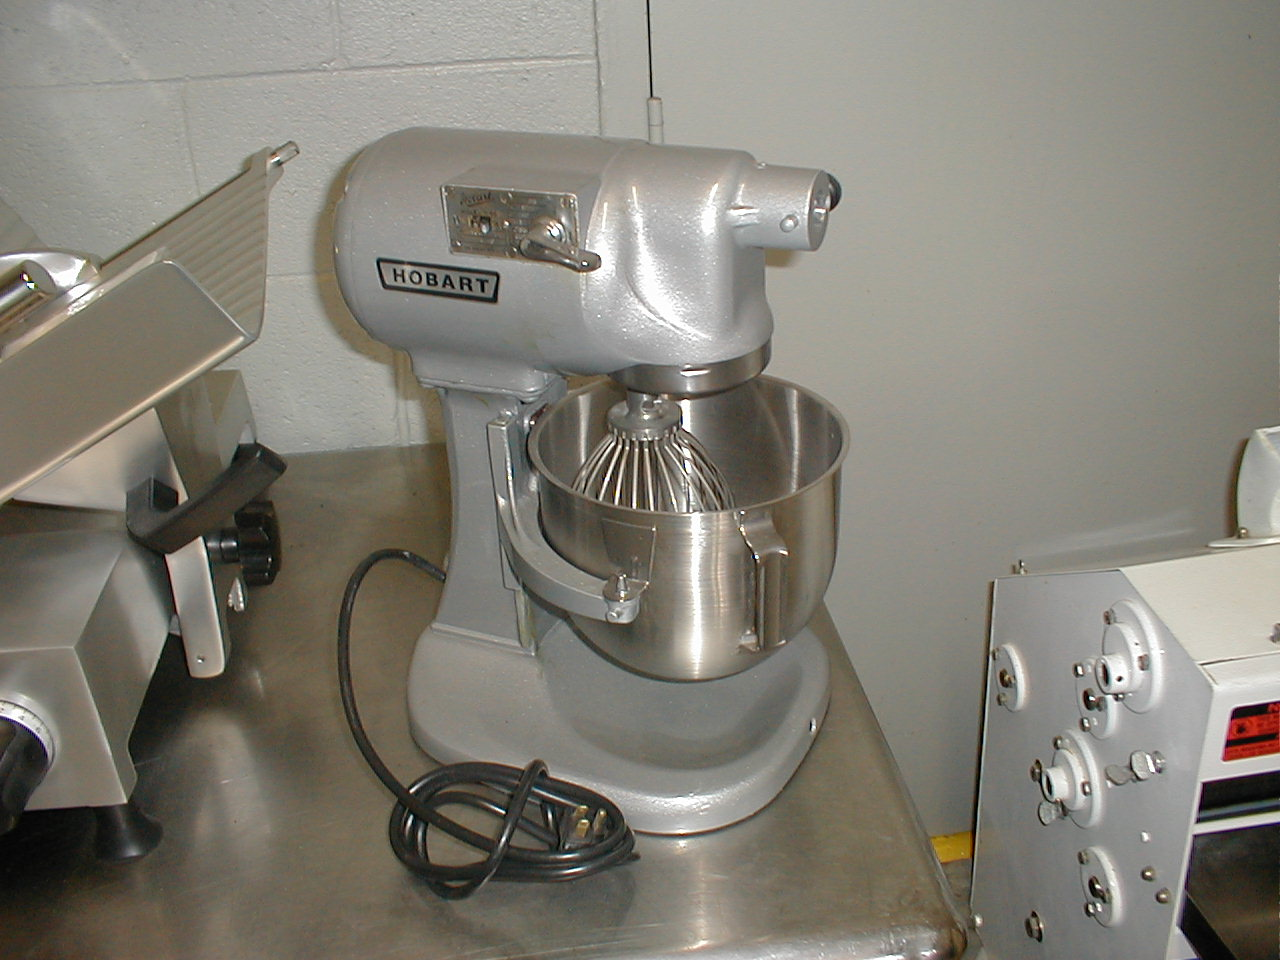 Hobart N-50 Mixer Refurbished Hobart N-50 mixer refurbished to factory condition. Our Refurbished units are guaranteed with a warranty. All of our refurbished Hobart Mixers are in pristine condition.